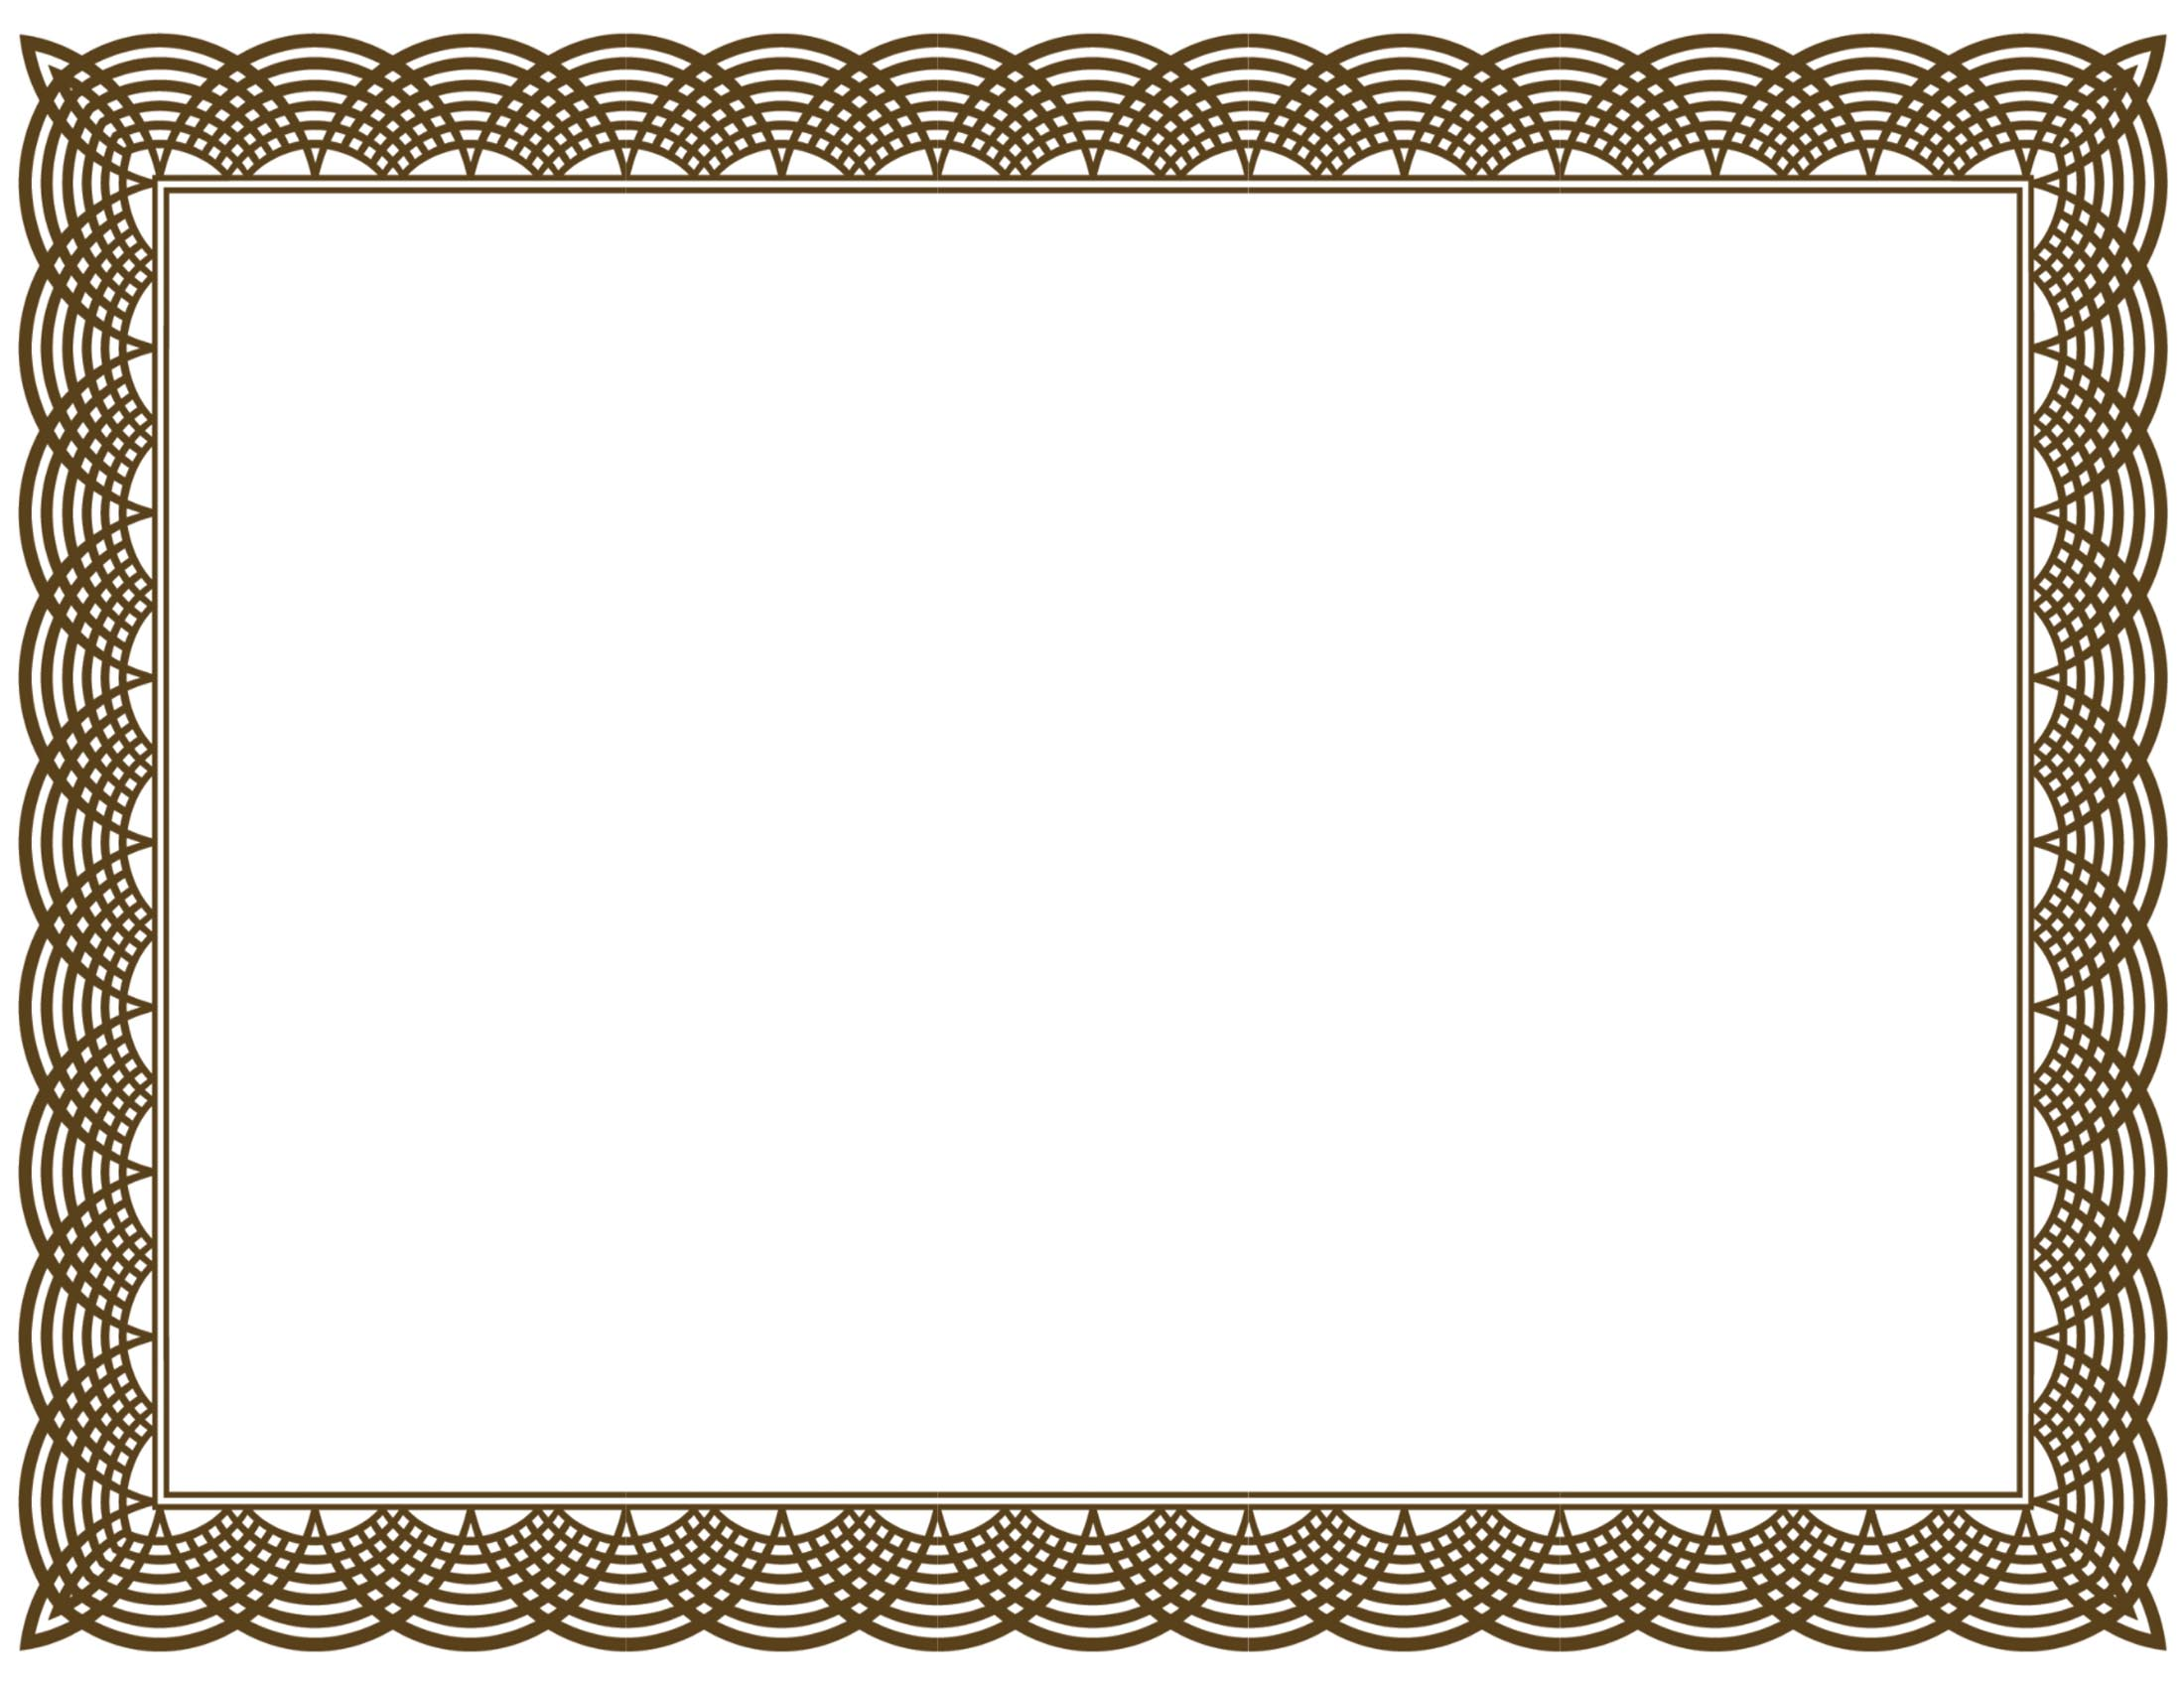 Free certificate borders clipart